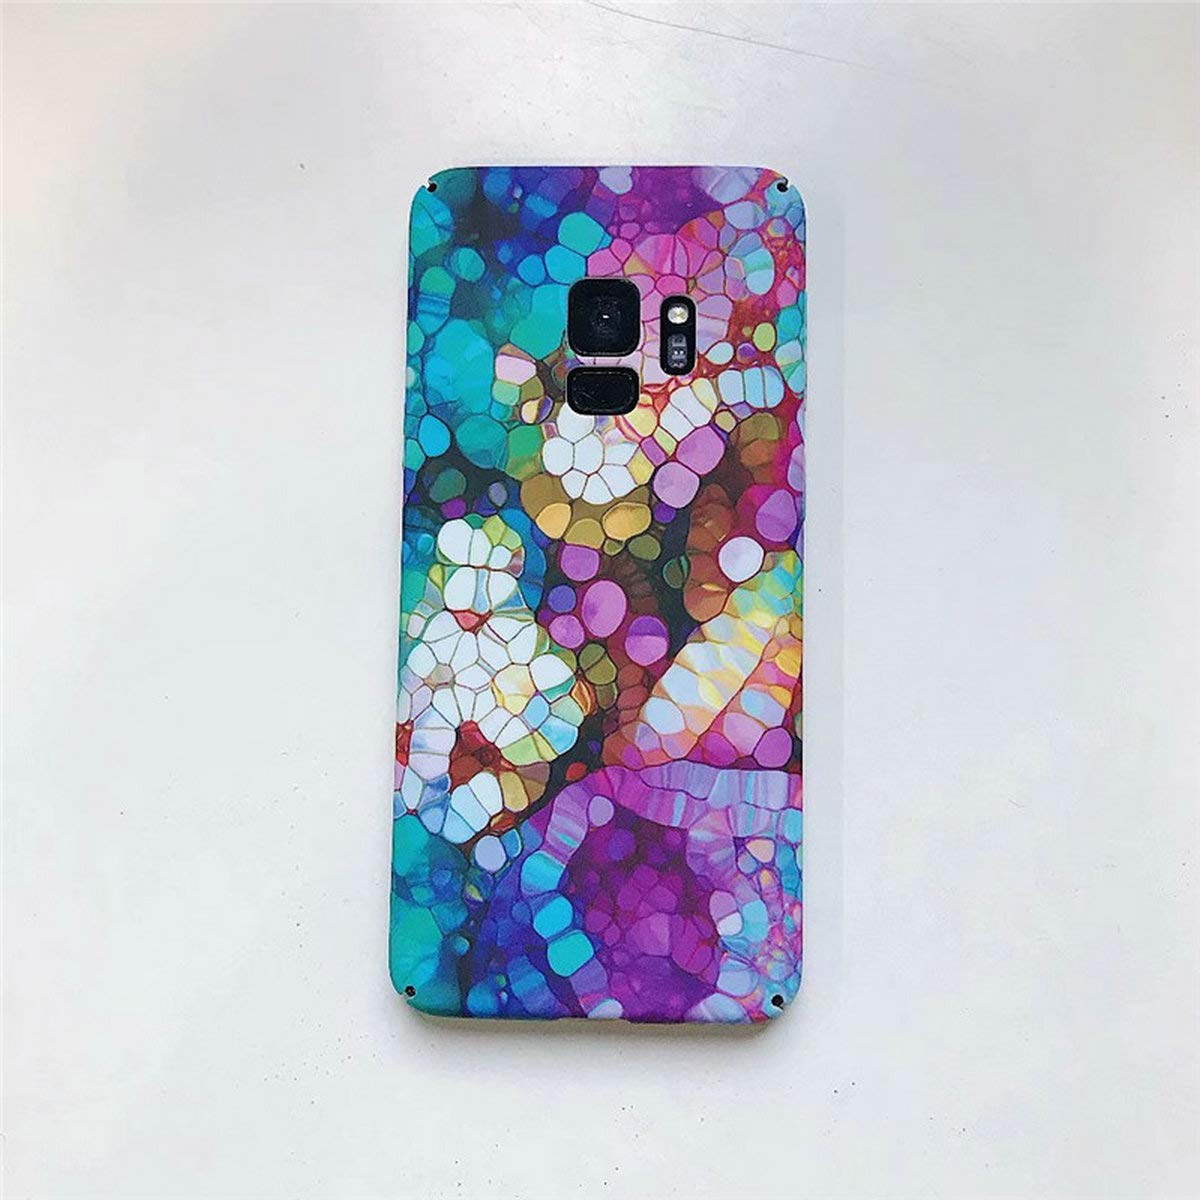 2165f72366 Amazon.com: Oil Samsung Galaxy S9 Case,Easeu Colorful Kaleidoscope Amazing  World Supler Slim Plastic Snap Back Cover Spectrum Hard Case for Samsung  Galaxy ...